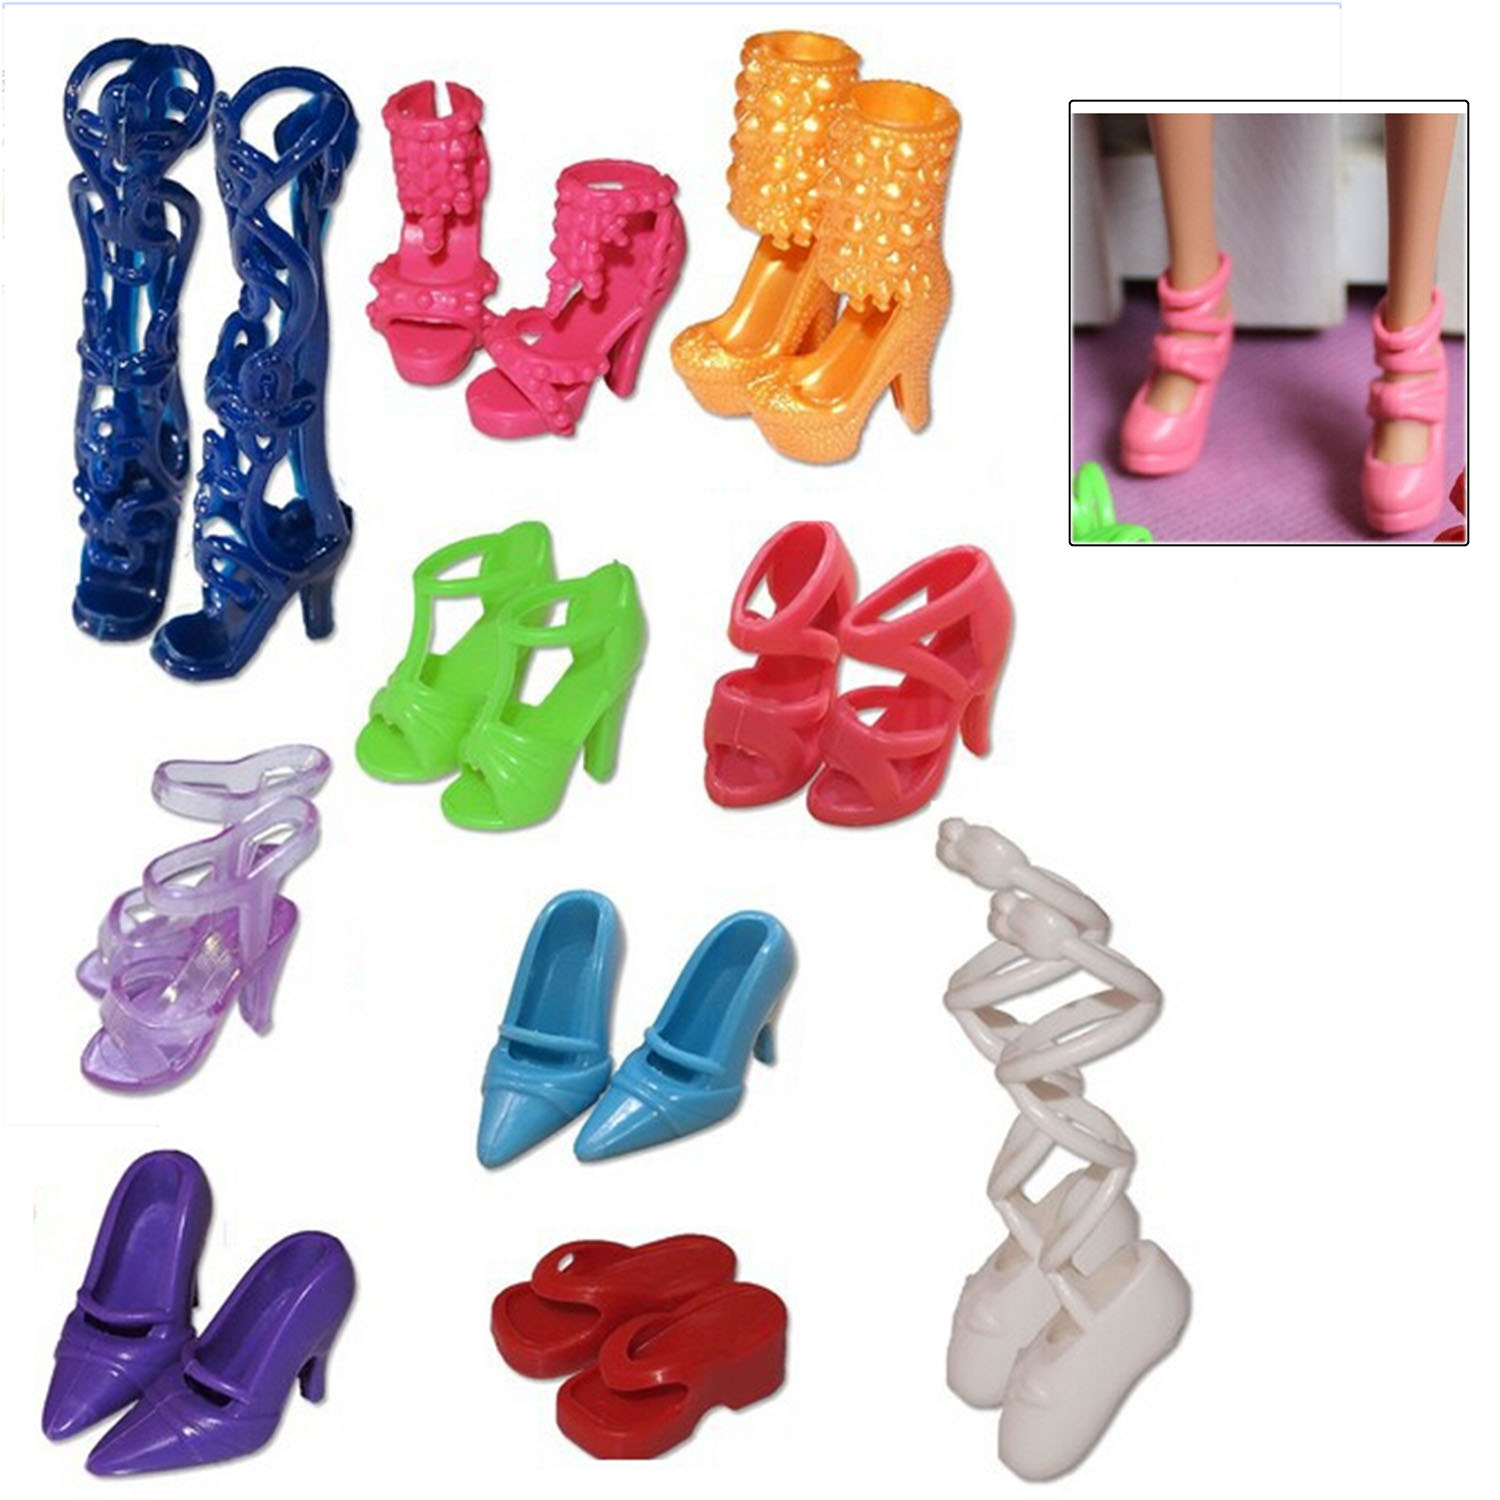 10 Pairs Fashion Handmade High-heeled Sandals Shoes Boots Stage Decoration For Barbie Dolls Girl Dolls Christmas Gifts Toys image